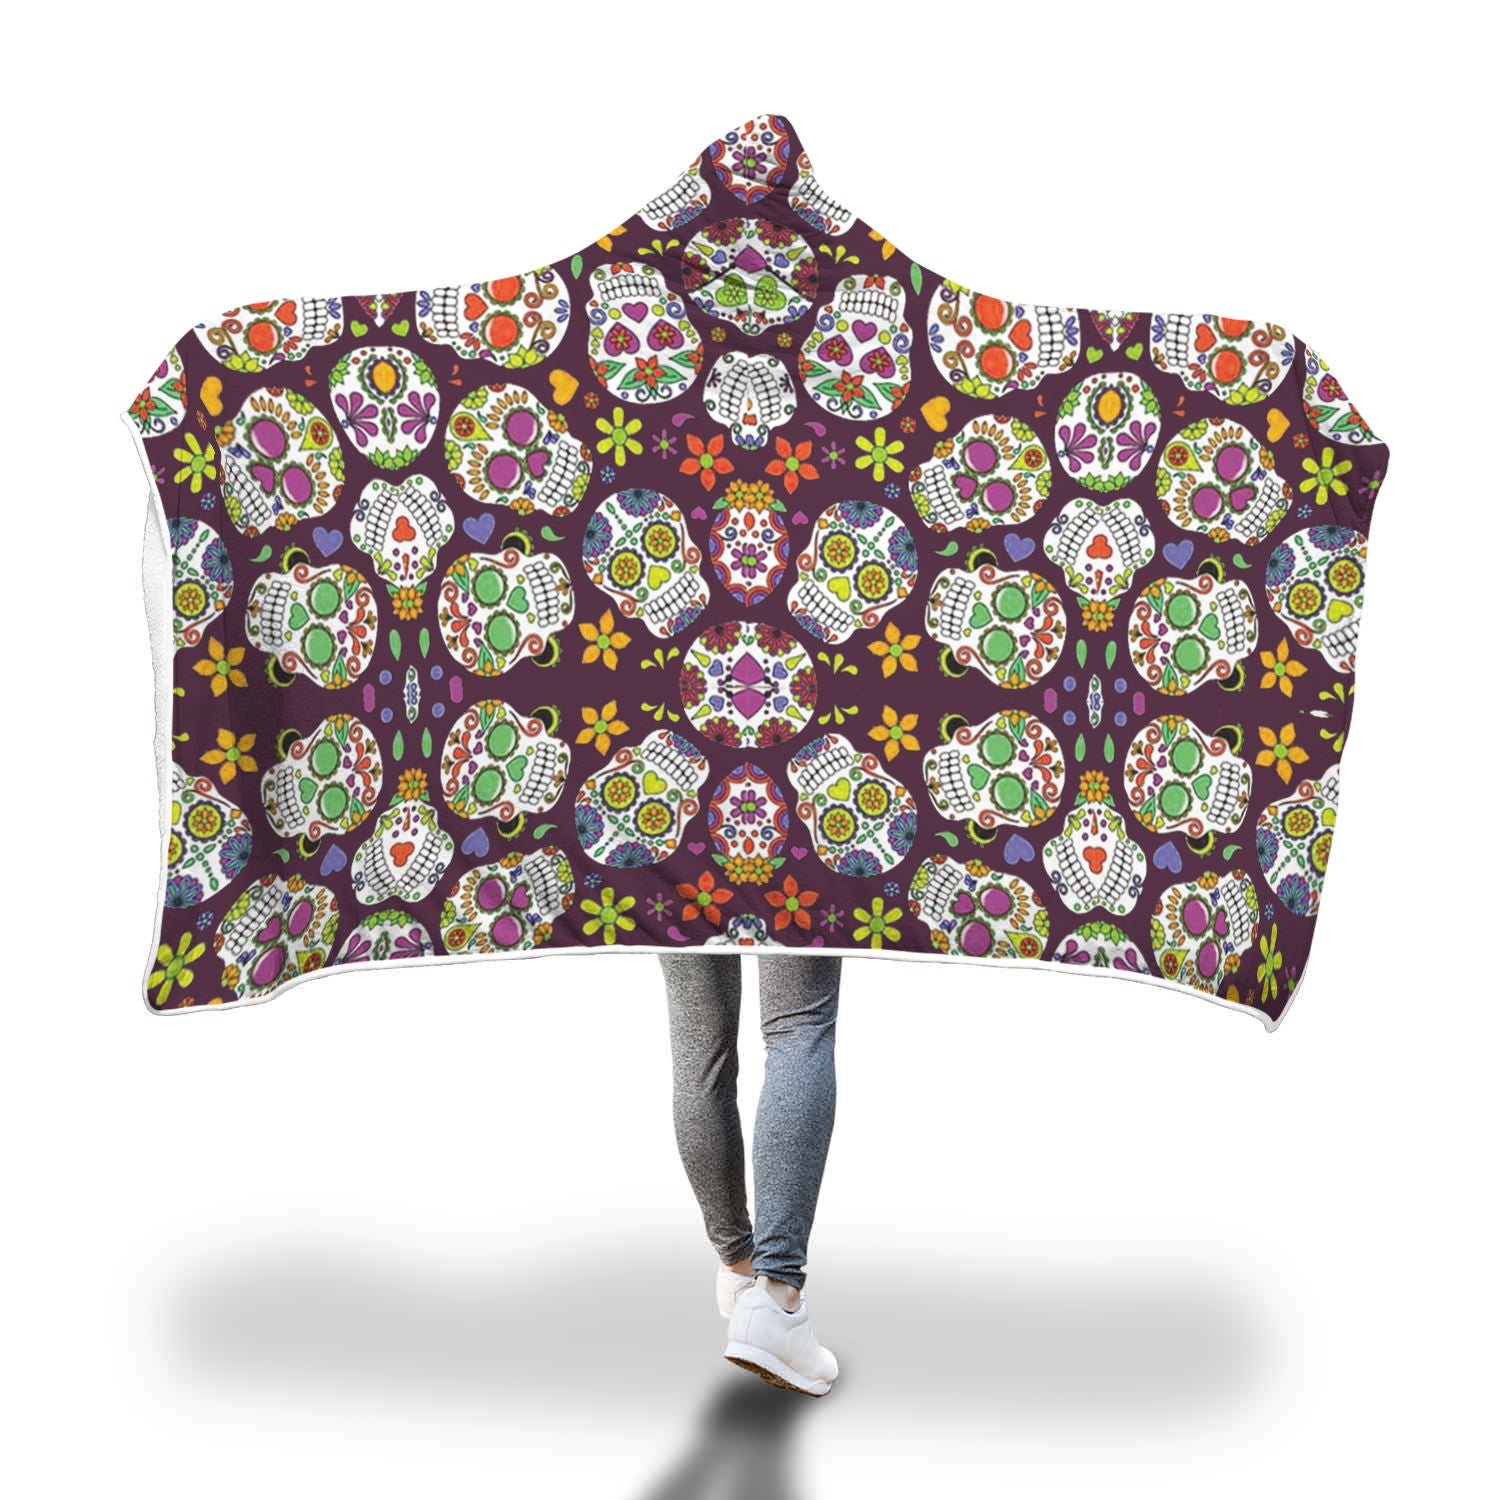 Sugar Skull Custom Hooded Blanket - Hooded Blanket